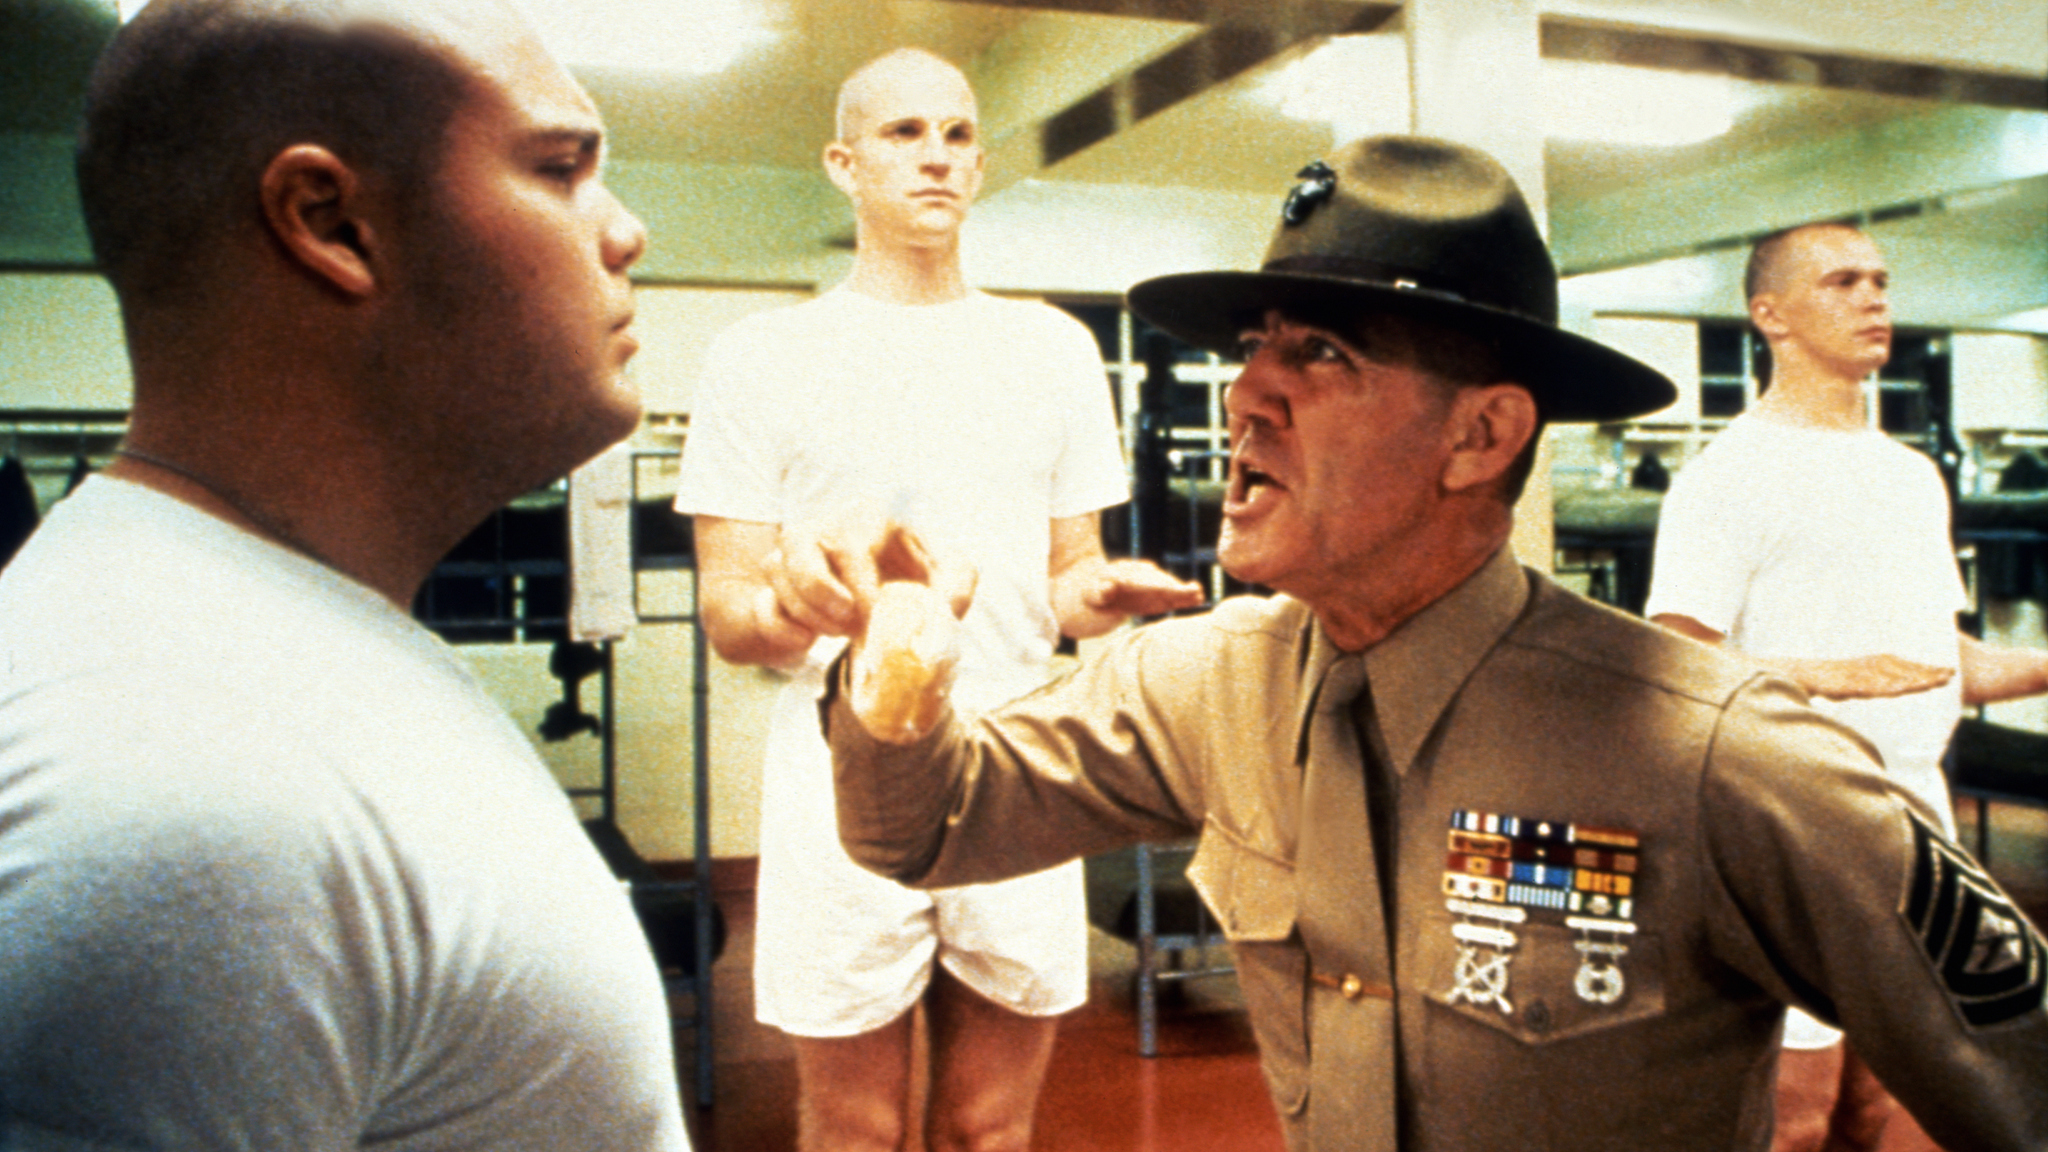 an introduction to the analysis of full metal jacket An excellent scene by scene analysis of full metal jacket and the jungian thing (kubrickfilmstripodcom) submitted 4 years ago by bug_eyed_earl 1 comment share.